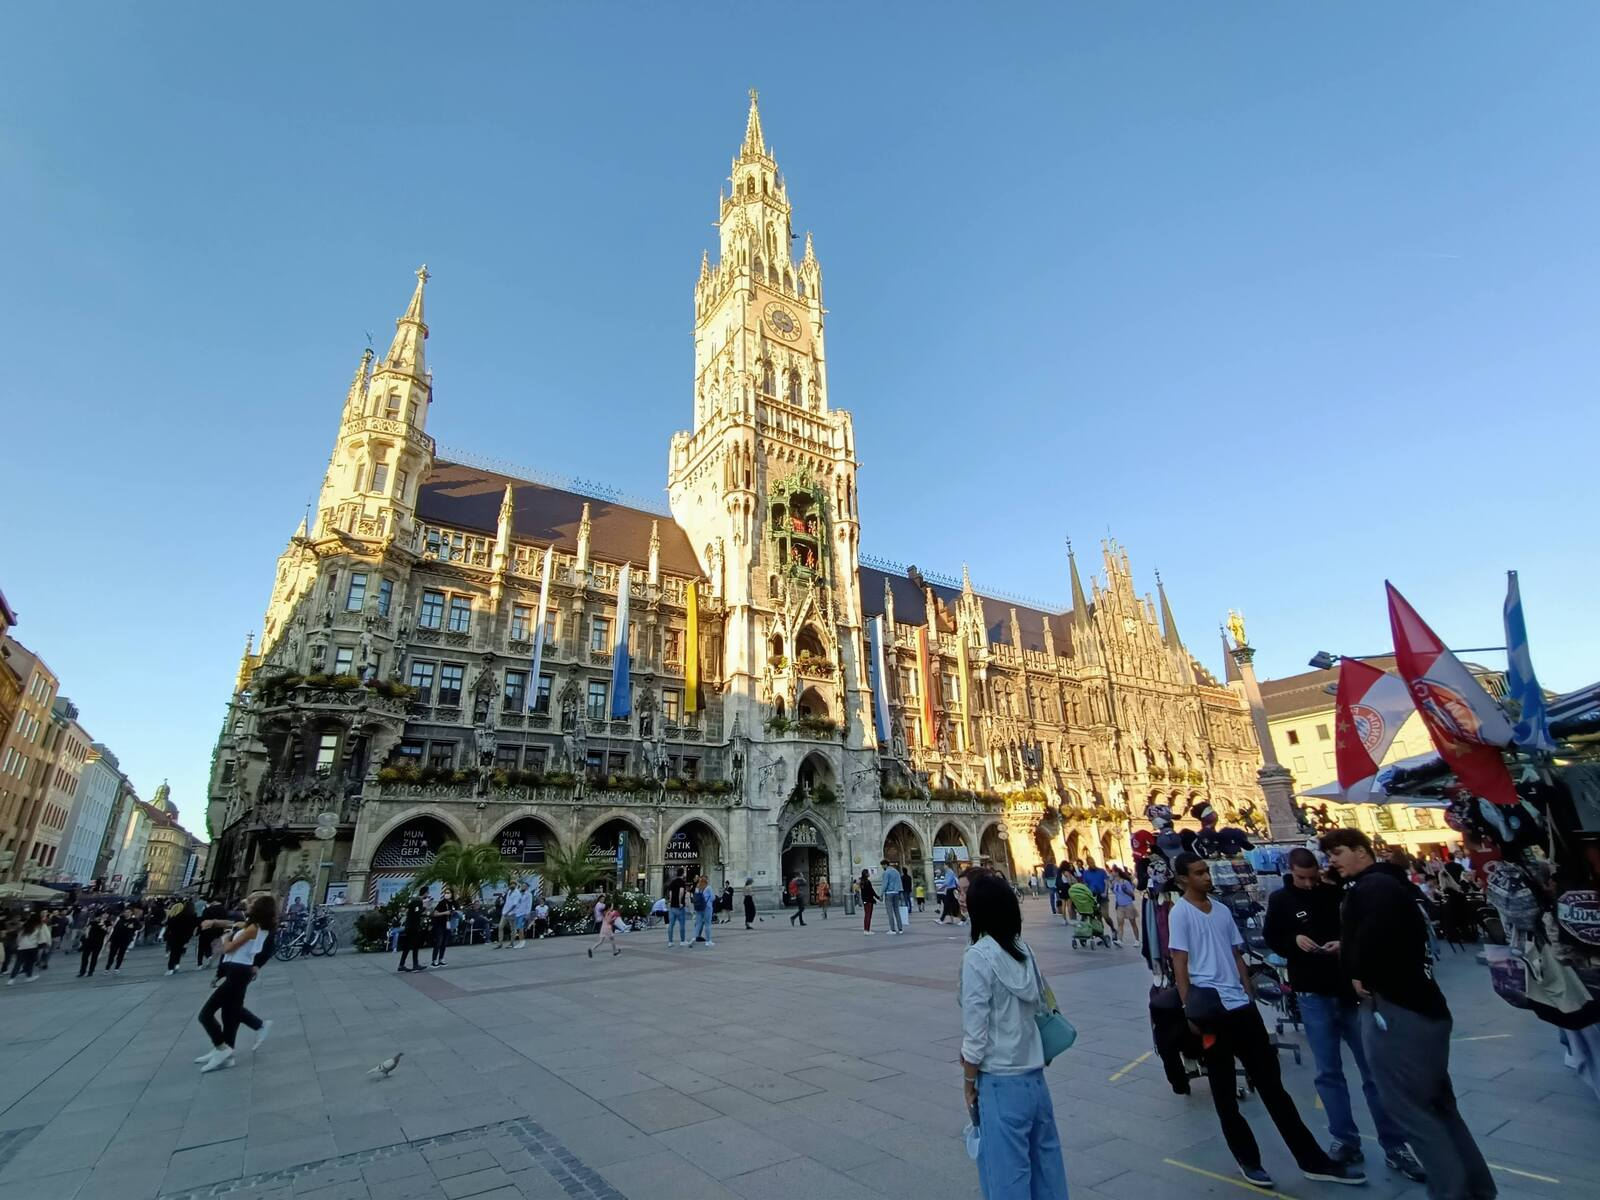 Some Cathedral we walked past in Old Town Munich